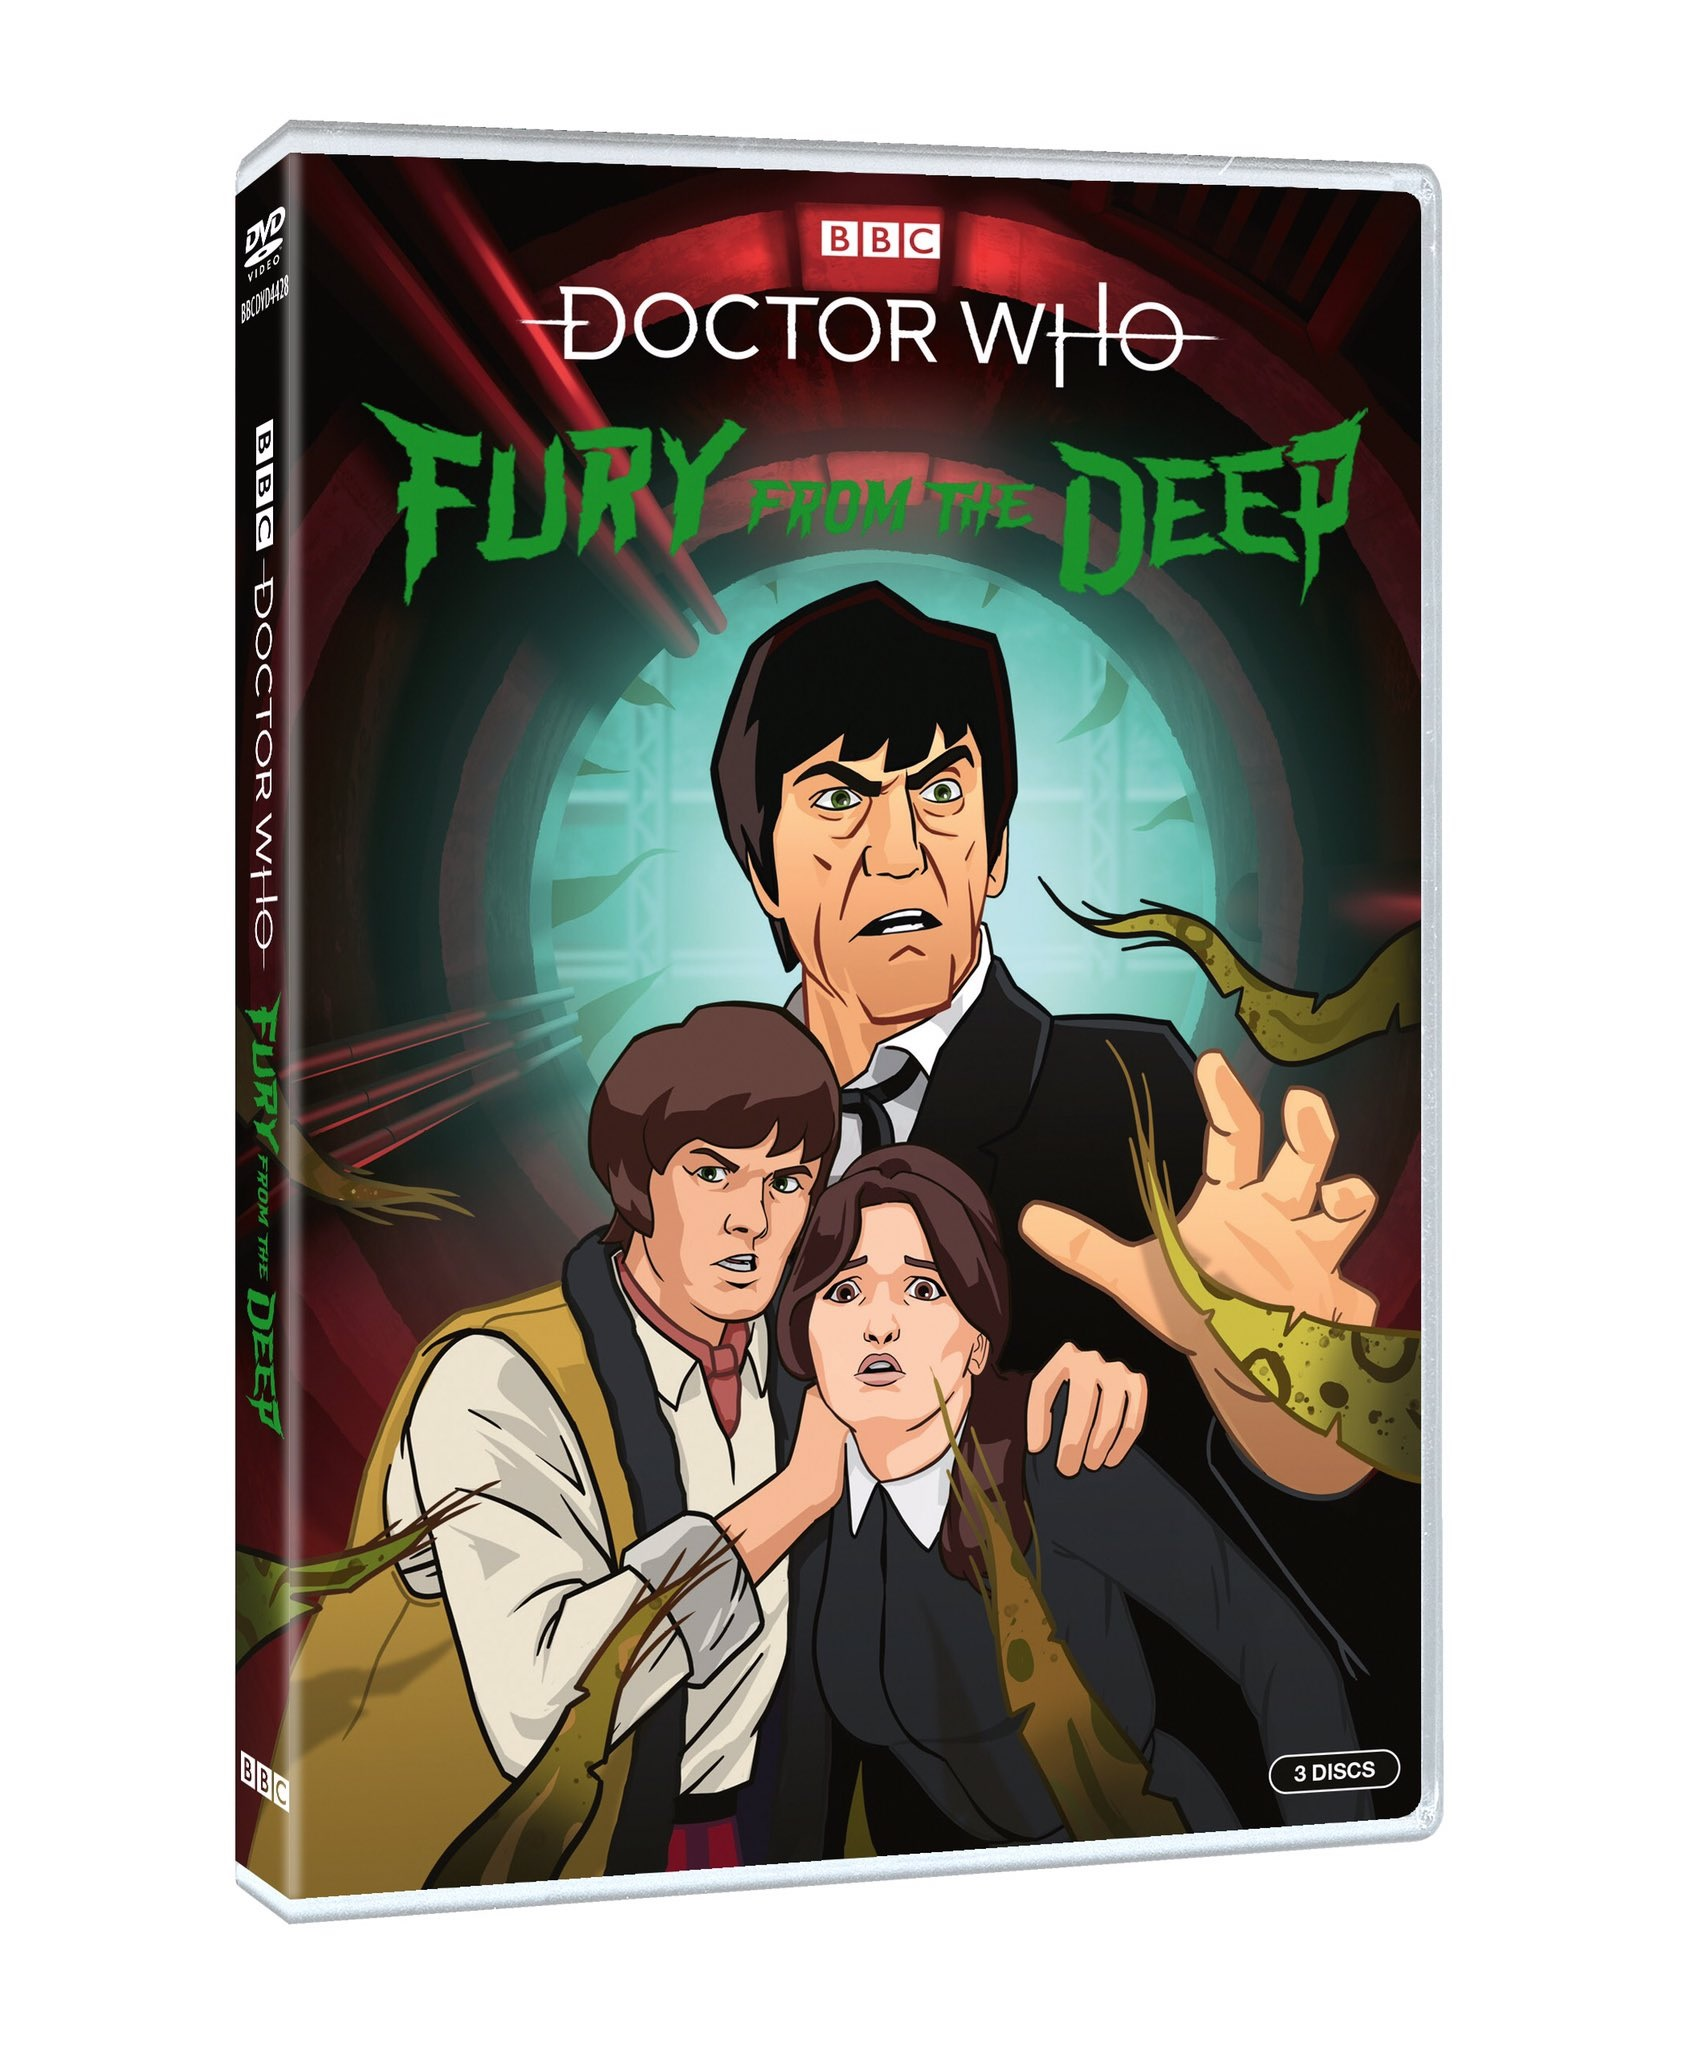 See the New Doctor Who Trailer for Fury from the Deep Animation